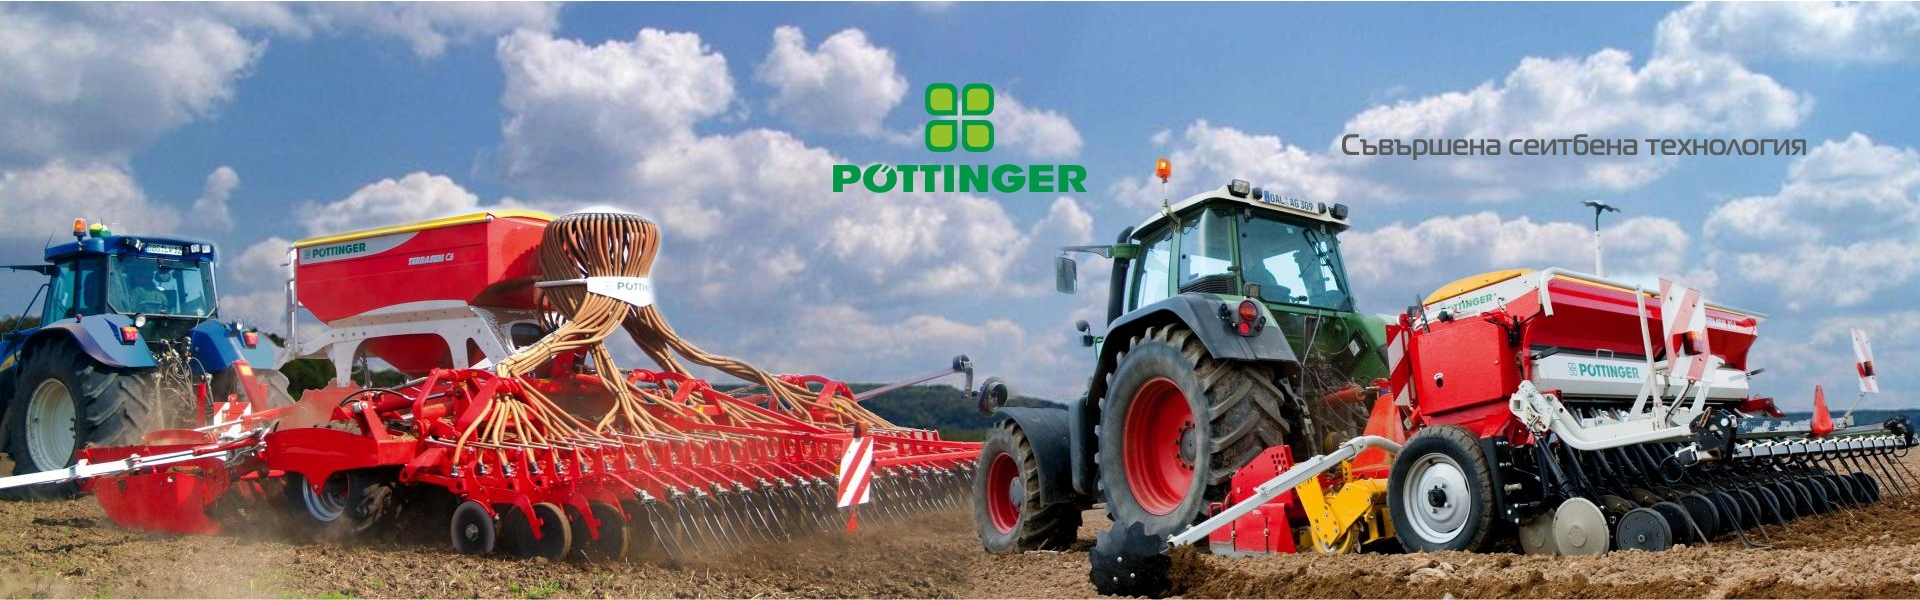 POETTINGER SEEDDRILLS 09.2016 BG